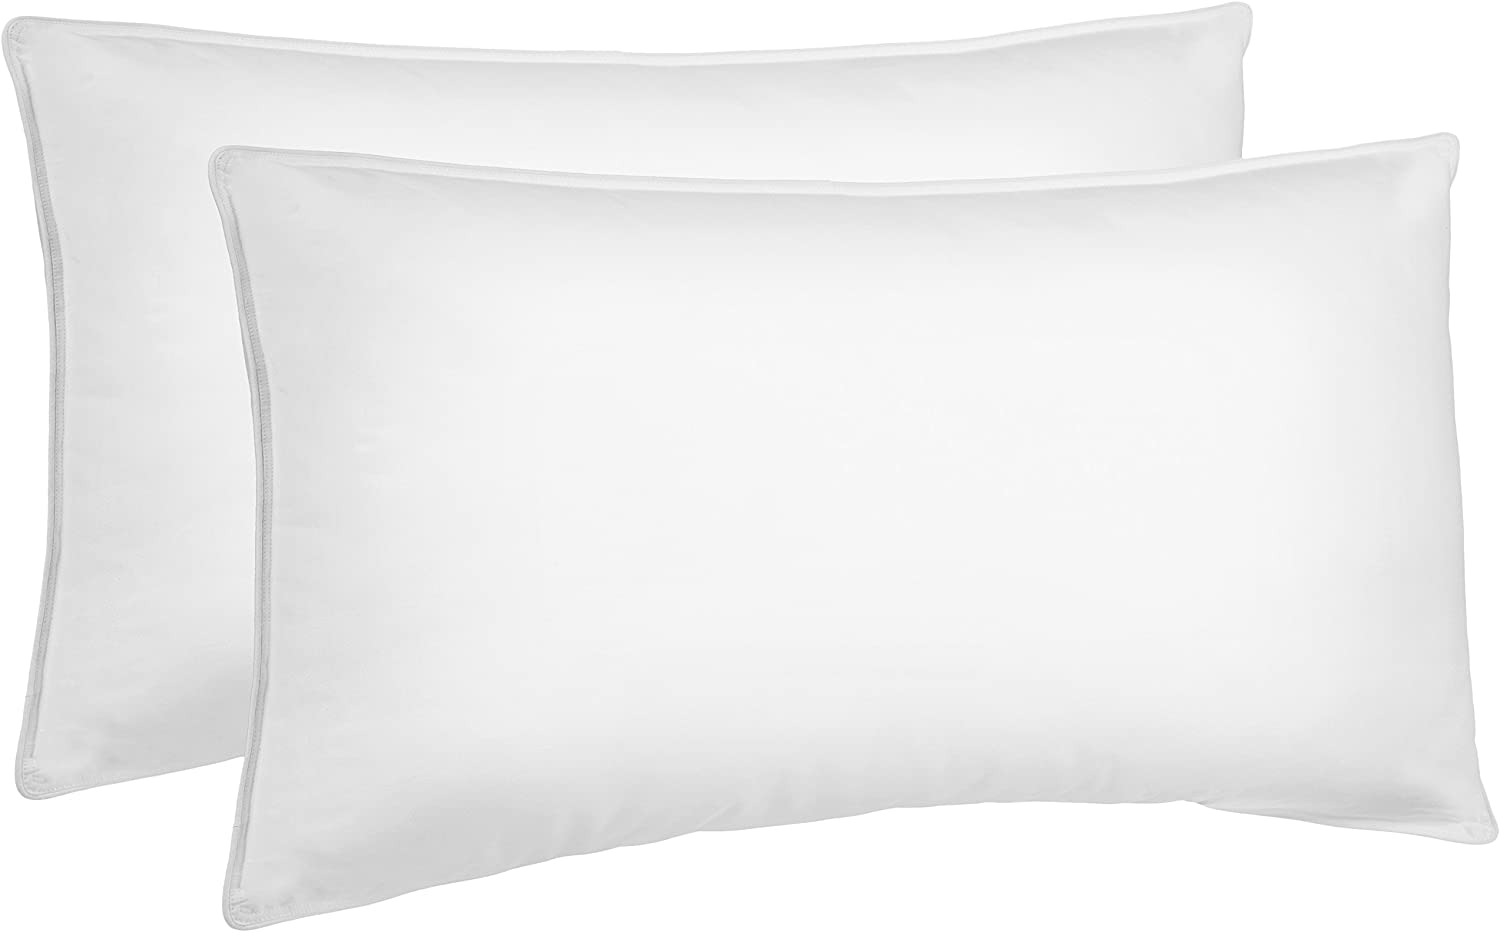 AmazonBasics Down Bed Pillows for Stomach & Back Sleepers